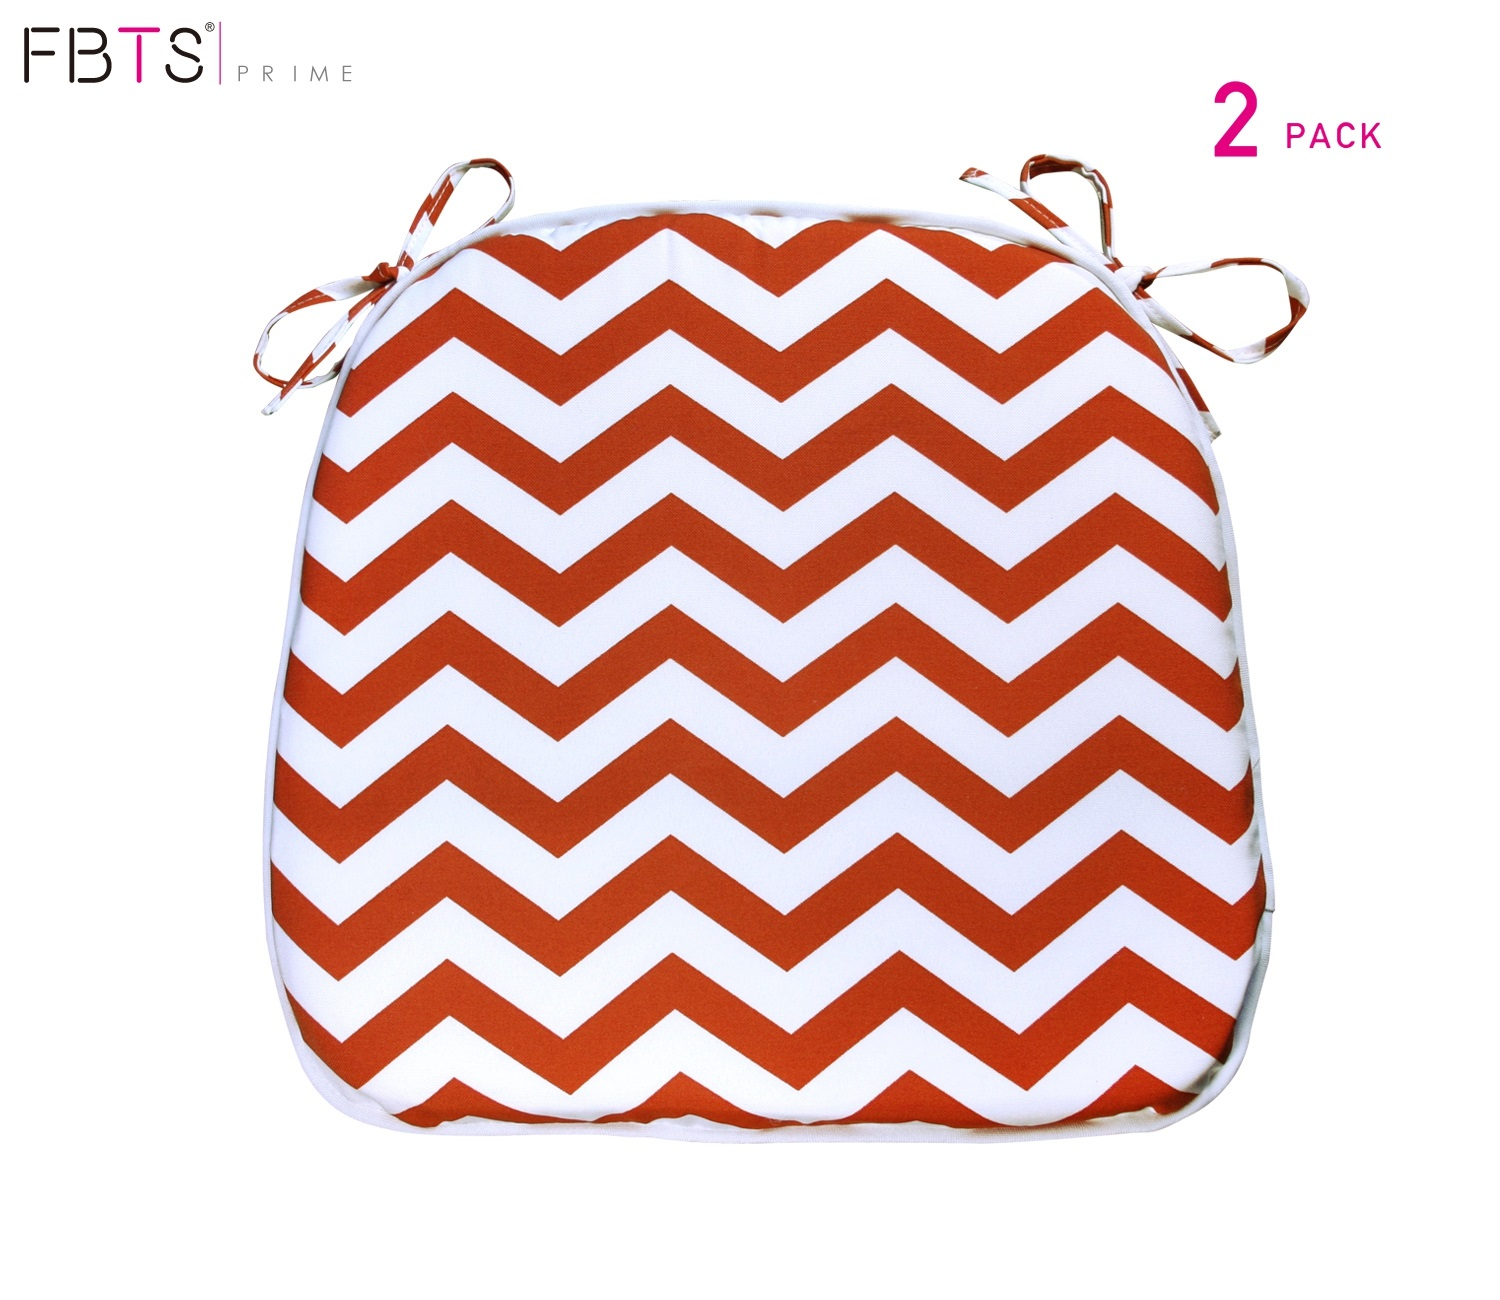 fbts prime outdoor chair cushion set of 2 16x17 inches patio seat cushions orange and white wave square chair pads for outdoor patio furniture